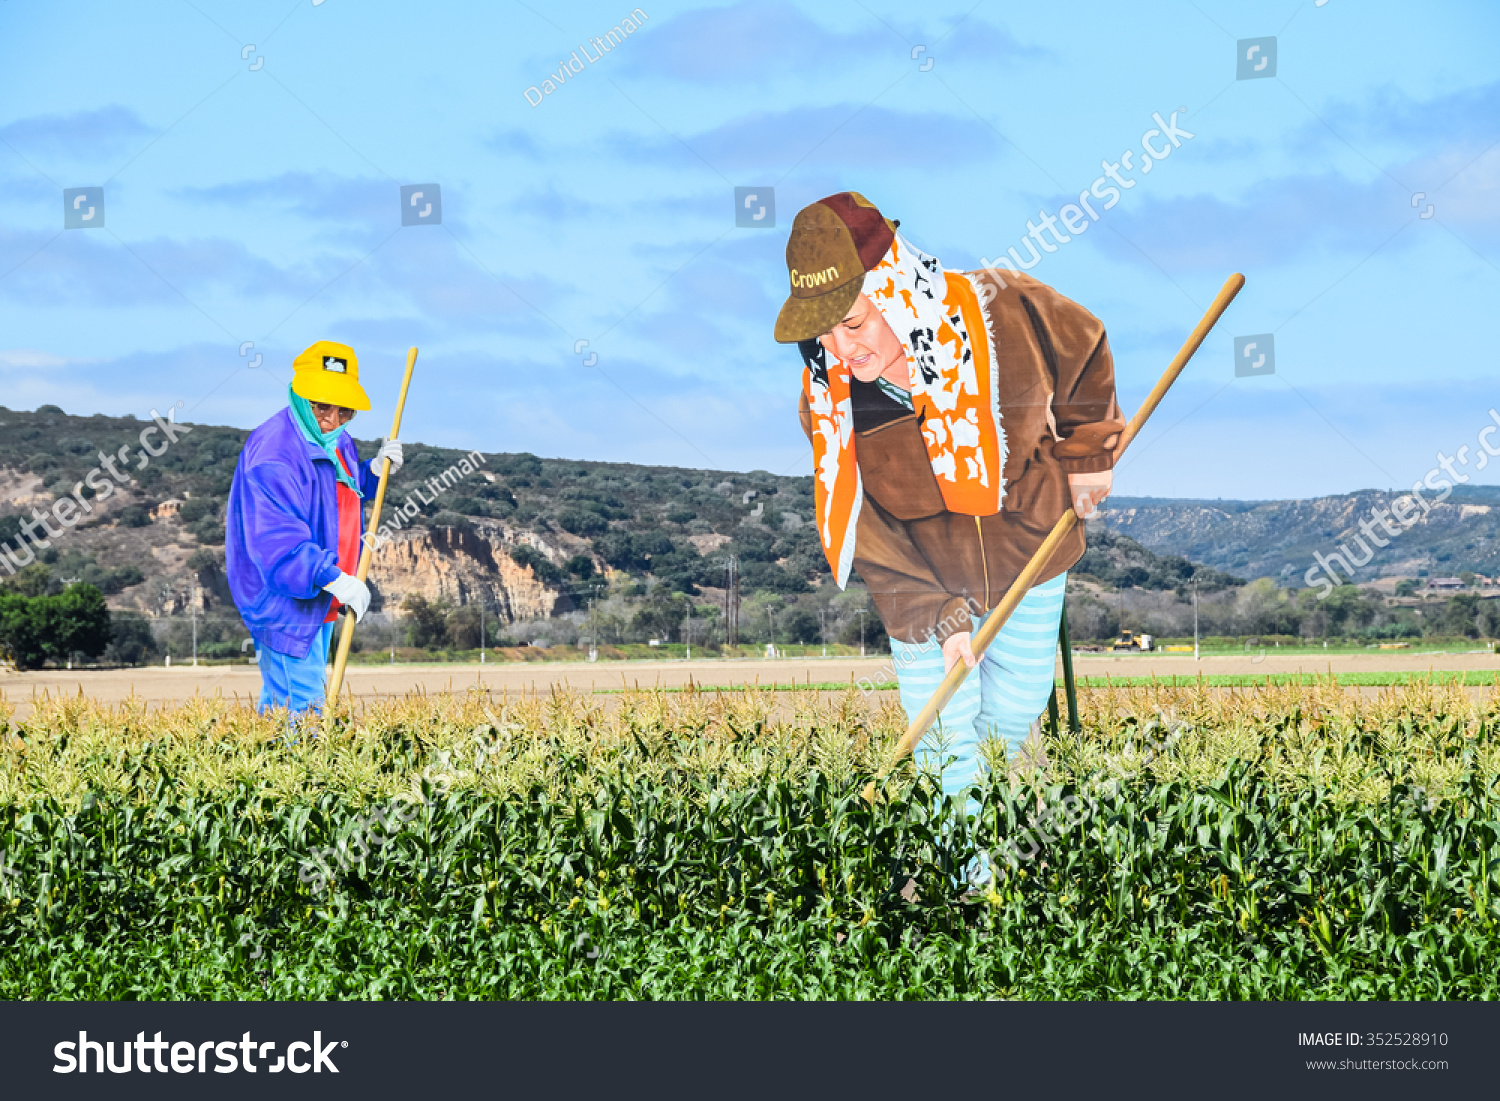 """Salinas, California, USA - September 2, 2015: Giant cut out figures of farm workers tend to the corn fields along the roadside in the Salinas Valley (Monterey County), """"the salad bowl of the world""""."""